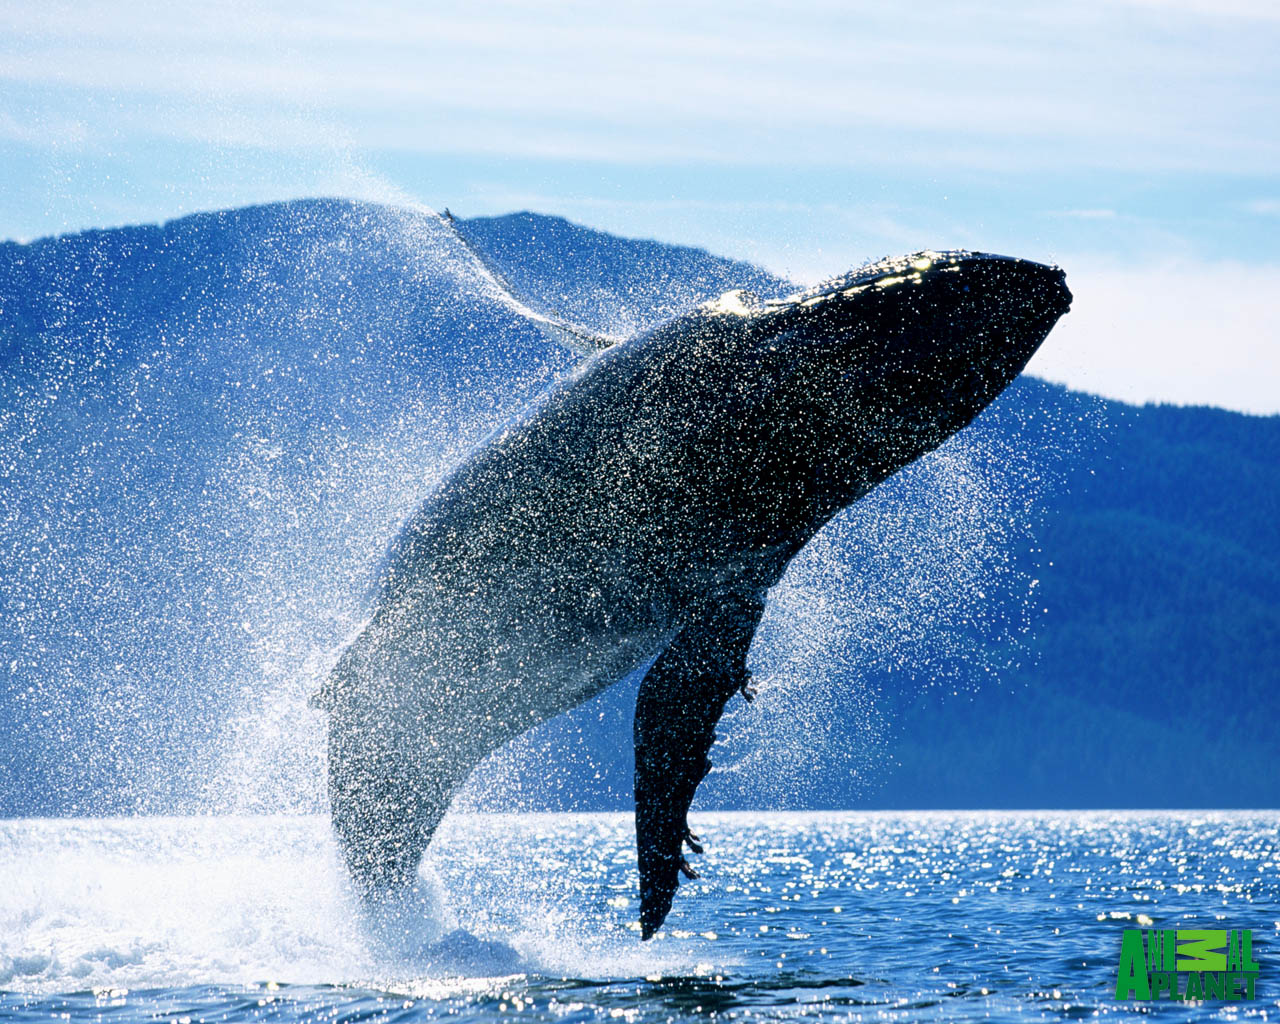 Wallpapers Desktop HD Jumping Humpback Whale Whales Desktop Hump 1280x1024